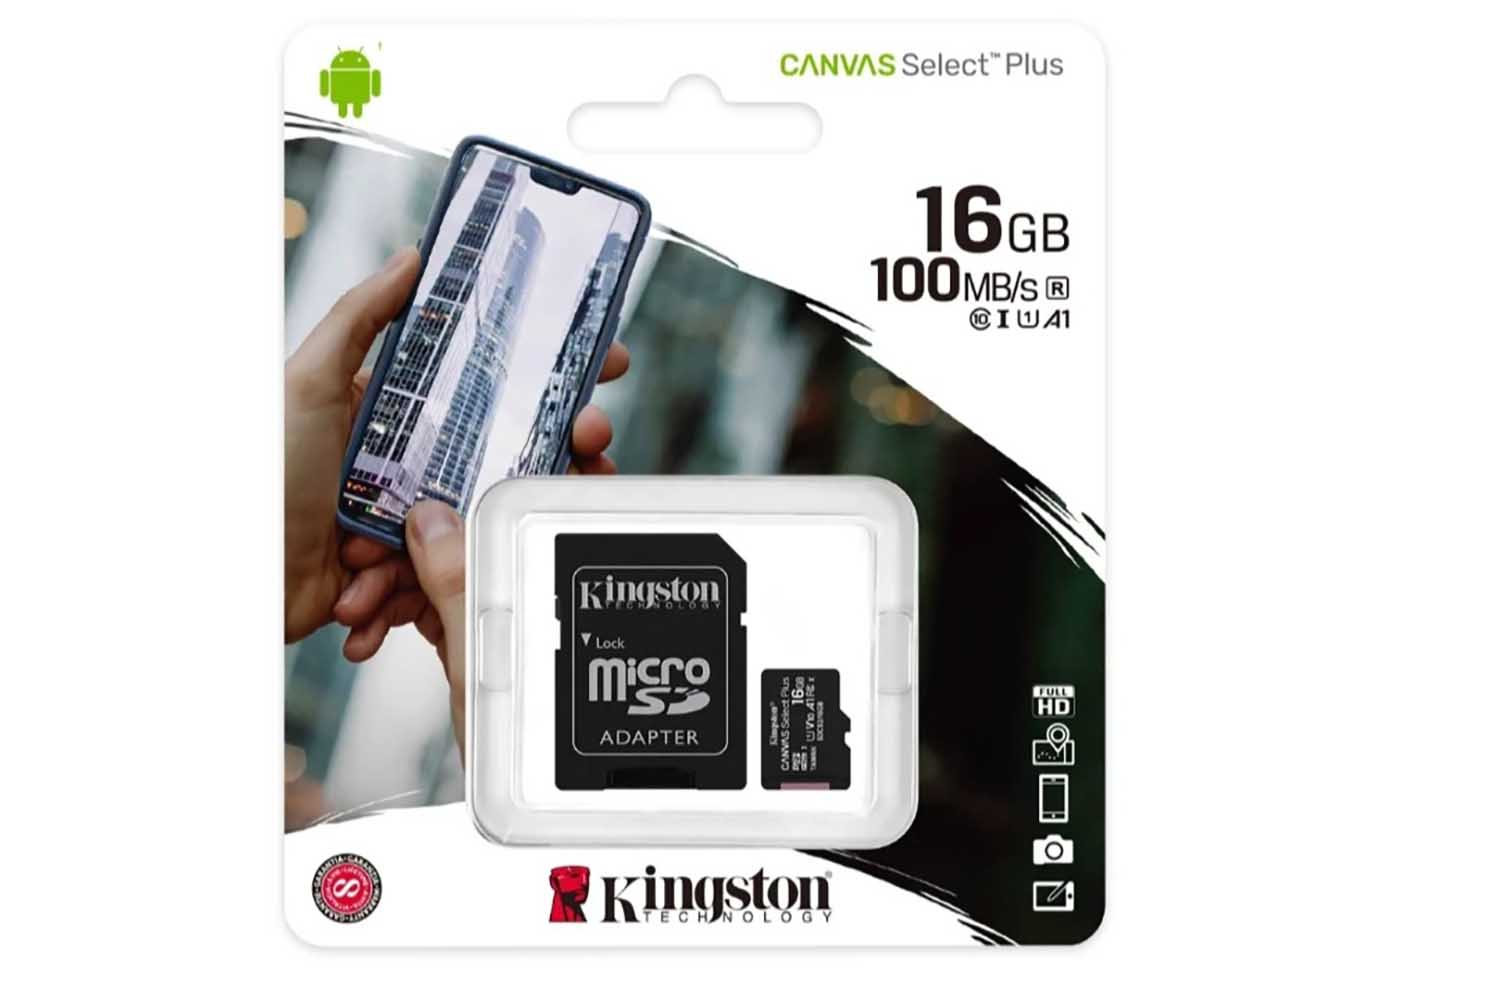 Карта памяти MicroSD 16GB Kingston Class 10 Canvas Select Plus A1 (100 Mb/s) с адаптером